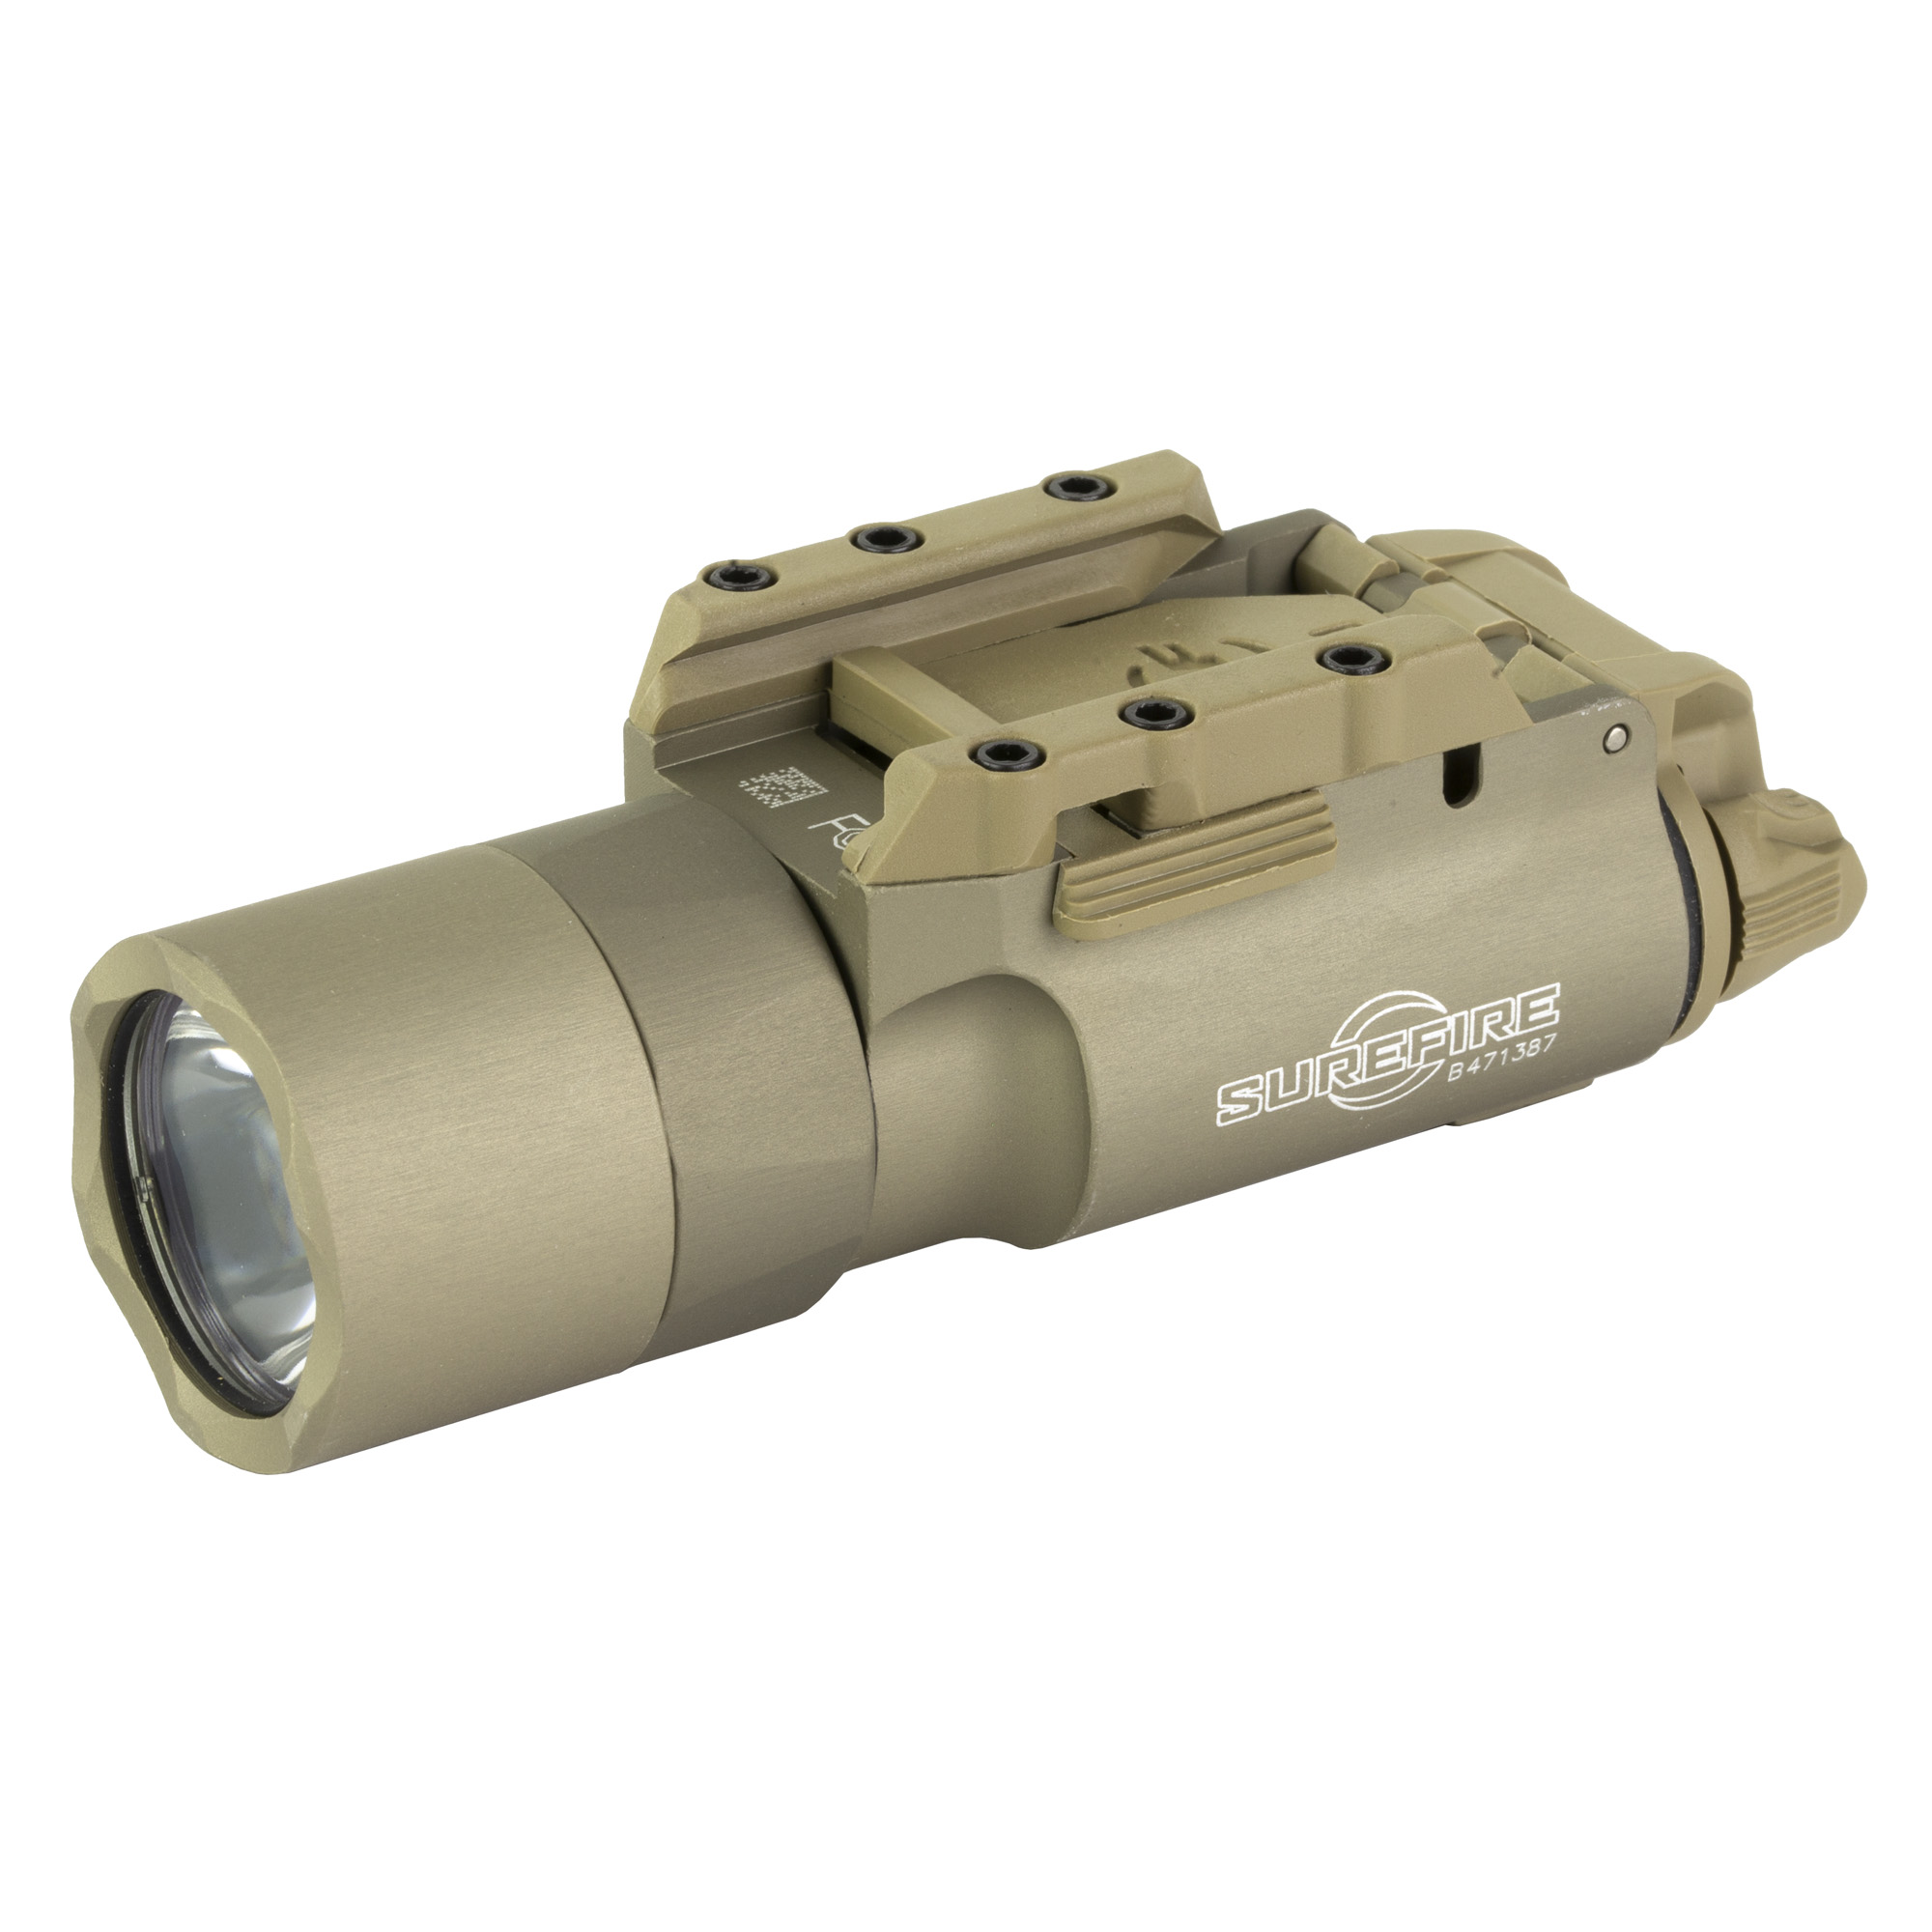 """This enhanced version of our best-selling SureFire X300 Ultra now delivers a stunning 1""""000 lumens of LED-generated output focused by a precision TIR lens"""" creating a far-reaching high intensity beam - with a larger center spot - that offers the power to positively identify threats at significant distances while temporarily impairing an adversary's vision. This intense beam also provides extensive peripheral illumination for maintaining situational awareness. Activating the X300 Ultra is done via ambidextrous switching located at the rear of body"""" providing one-finger control - press the switch on either side for momentary-on activation"""" flip up or down for constant-on activation. Optional DG grip switches (for pistols) and a pressure activated XT07 tape switch (for long guns) permit the X300 Ultra to be activated without altering your grip on your weapon. The X300 Ultra can be attached to a pistol or a long gun since its Rail-Lock(R) system permits rapid attachment to and removal from either Universal or Picatinny rails. Its high-strength aerospace aluminum body is Mil-Spec Hard Anodized for superior toughness and is O-ring and gasket sealed to make it weatherproof."""